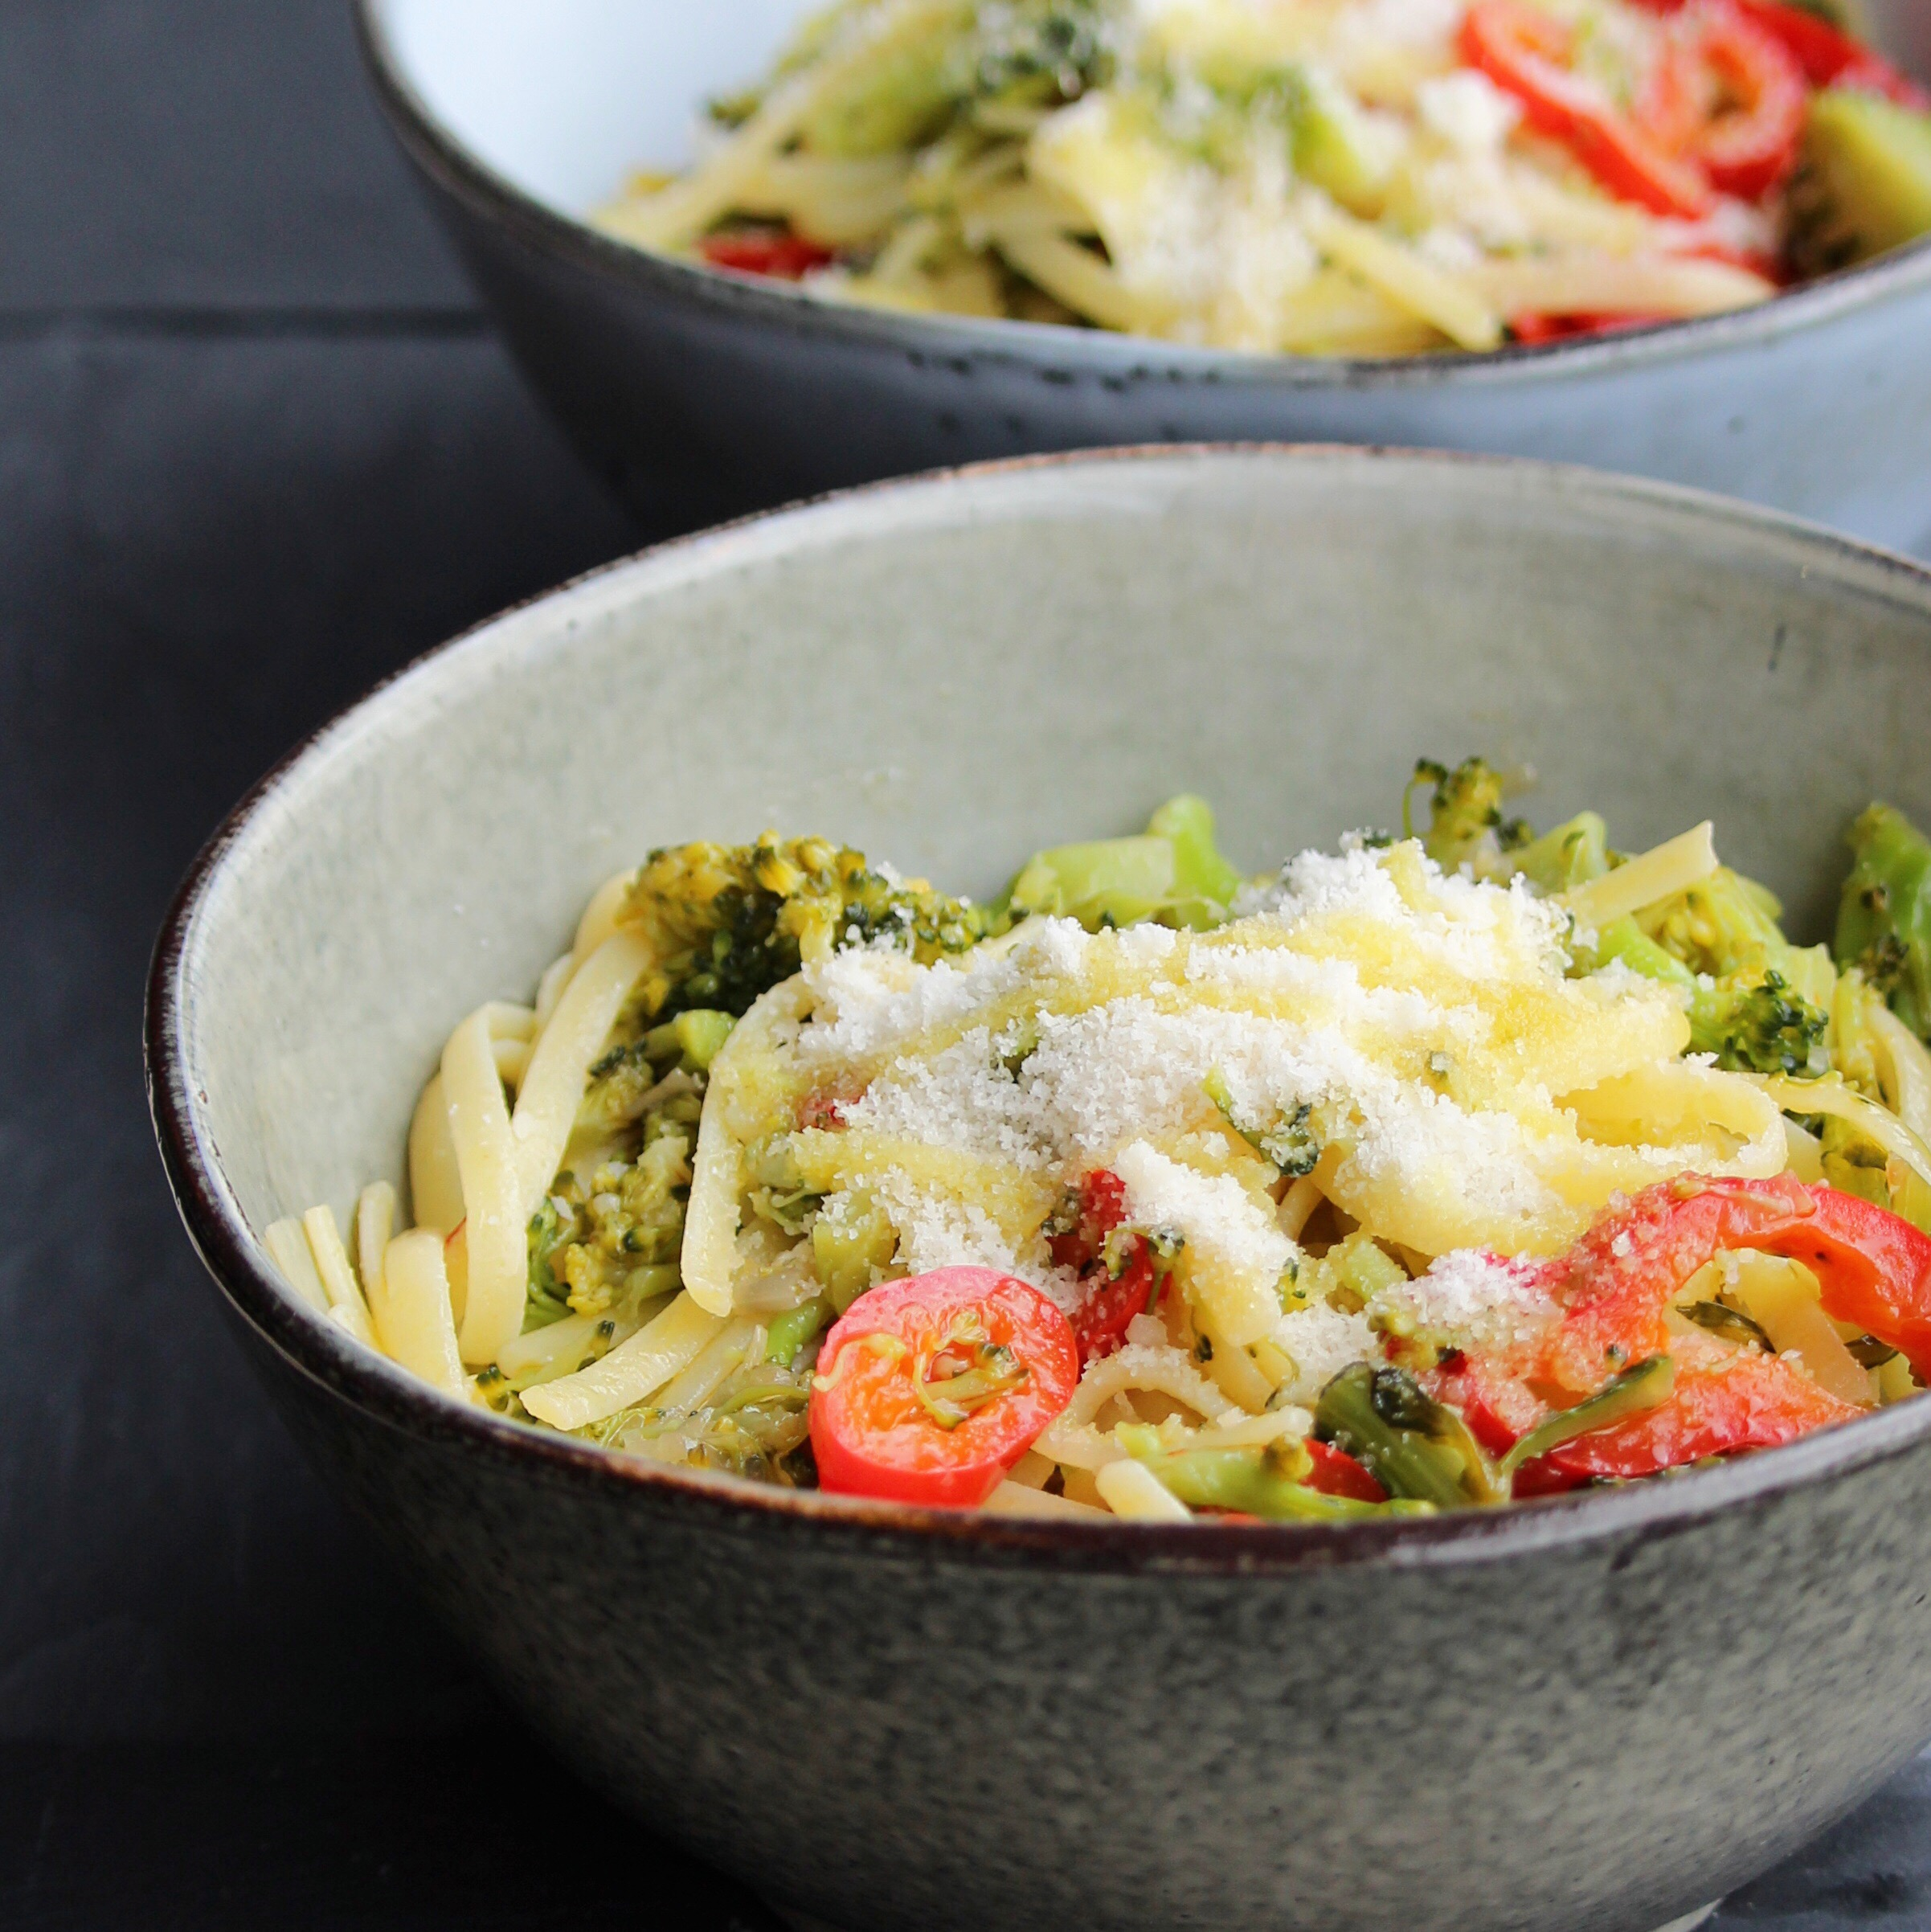 Linguini with Broccoli and Red Peppers Chris Catley